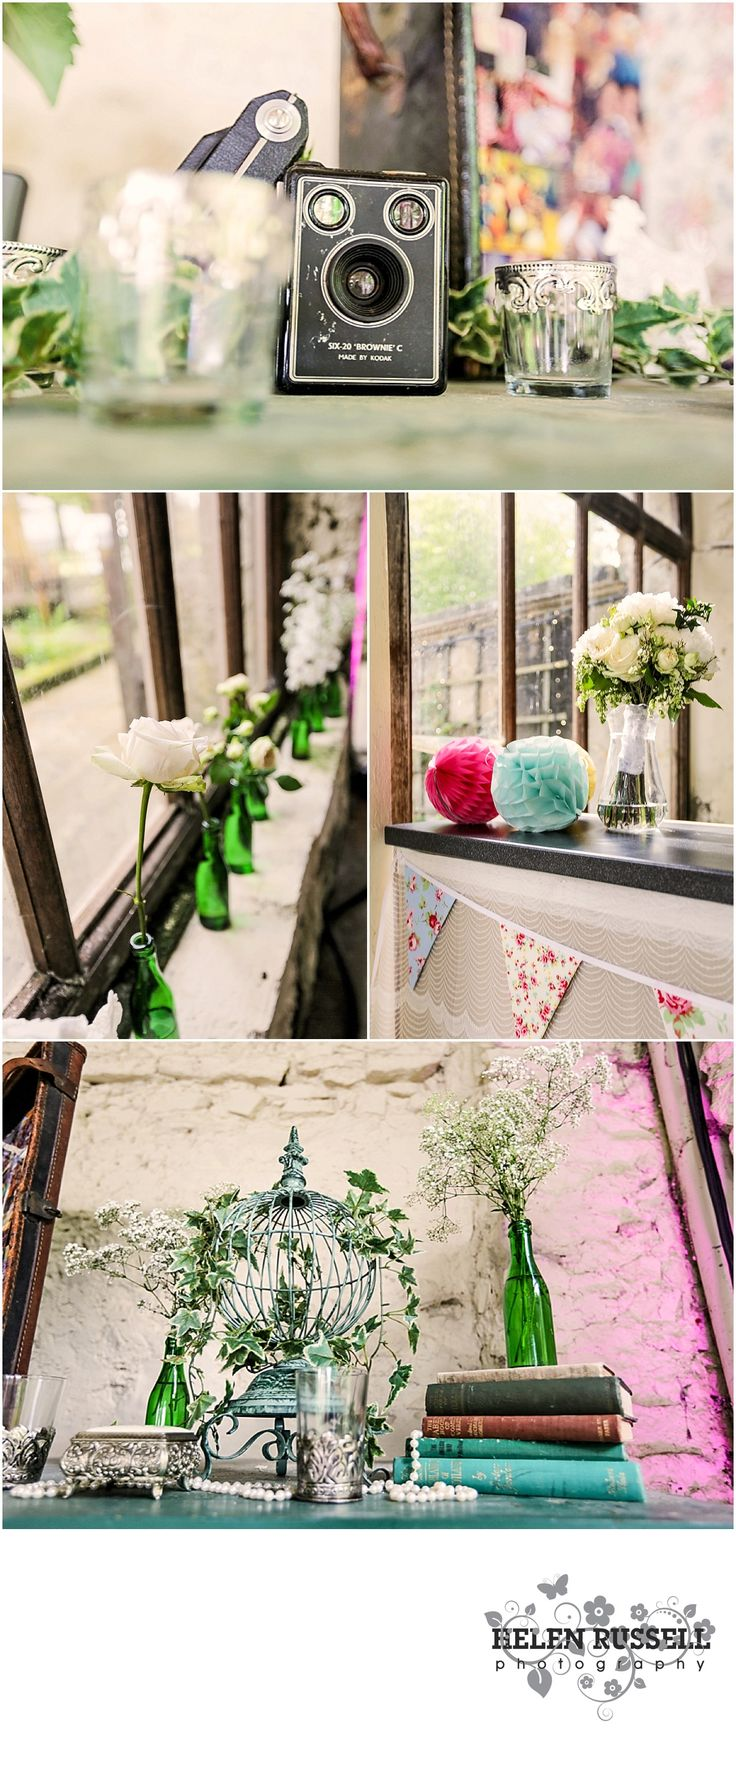 Duncombe Park, Wedding Ideas, Vintage Wedding, Outdoor Wedding, Industrial Wedding, Wedding Inspiration, Unique Wedding, Quirky Wedding, Yorkshire Wedding, Wedding Details, Prop Hire, Dry Hire Wedding, Prop Inspiration, Wedding, Props, Quirky Wedding Detail Ideas, DIY Wedding Detail, Unique Ideas, Glass Bottles, Vintage Bottles, Hydrangeas, Vintage Flowers, Vintage Camera, Jewellery Box, Globe Cage, Vintage Books, Wedding Bunting, Lace, Pearls, Glass Vase, Candle Holders